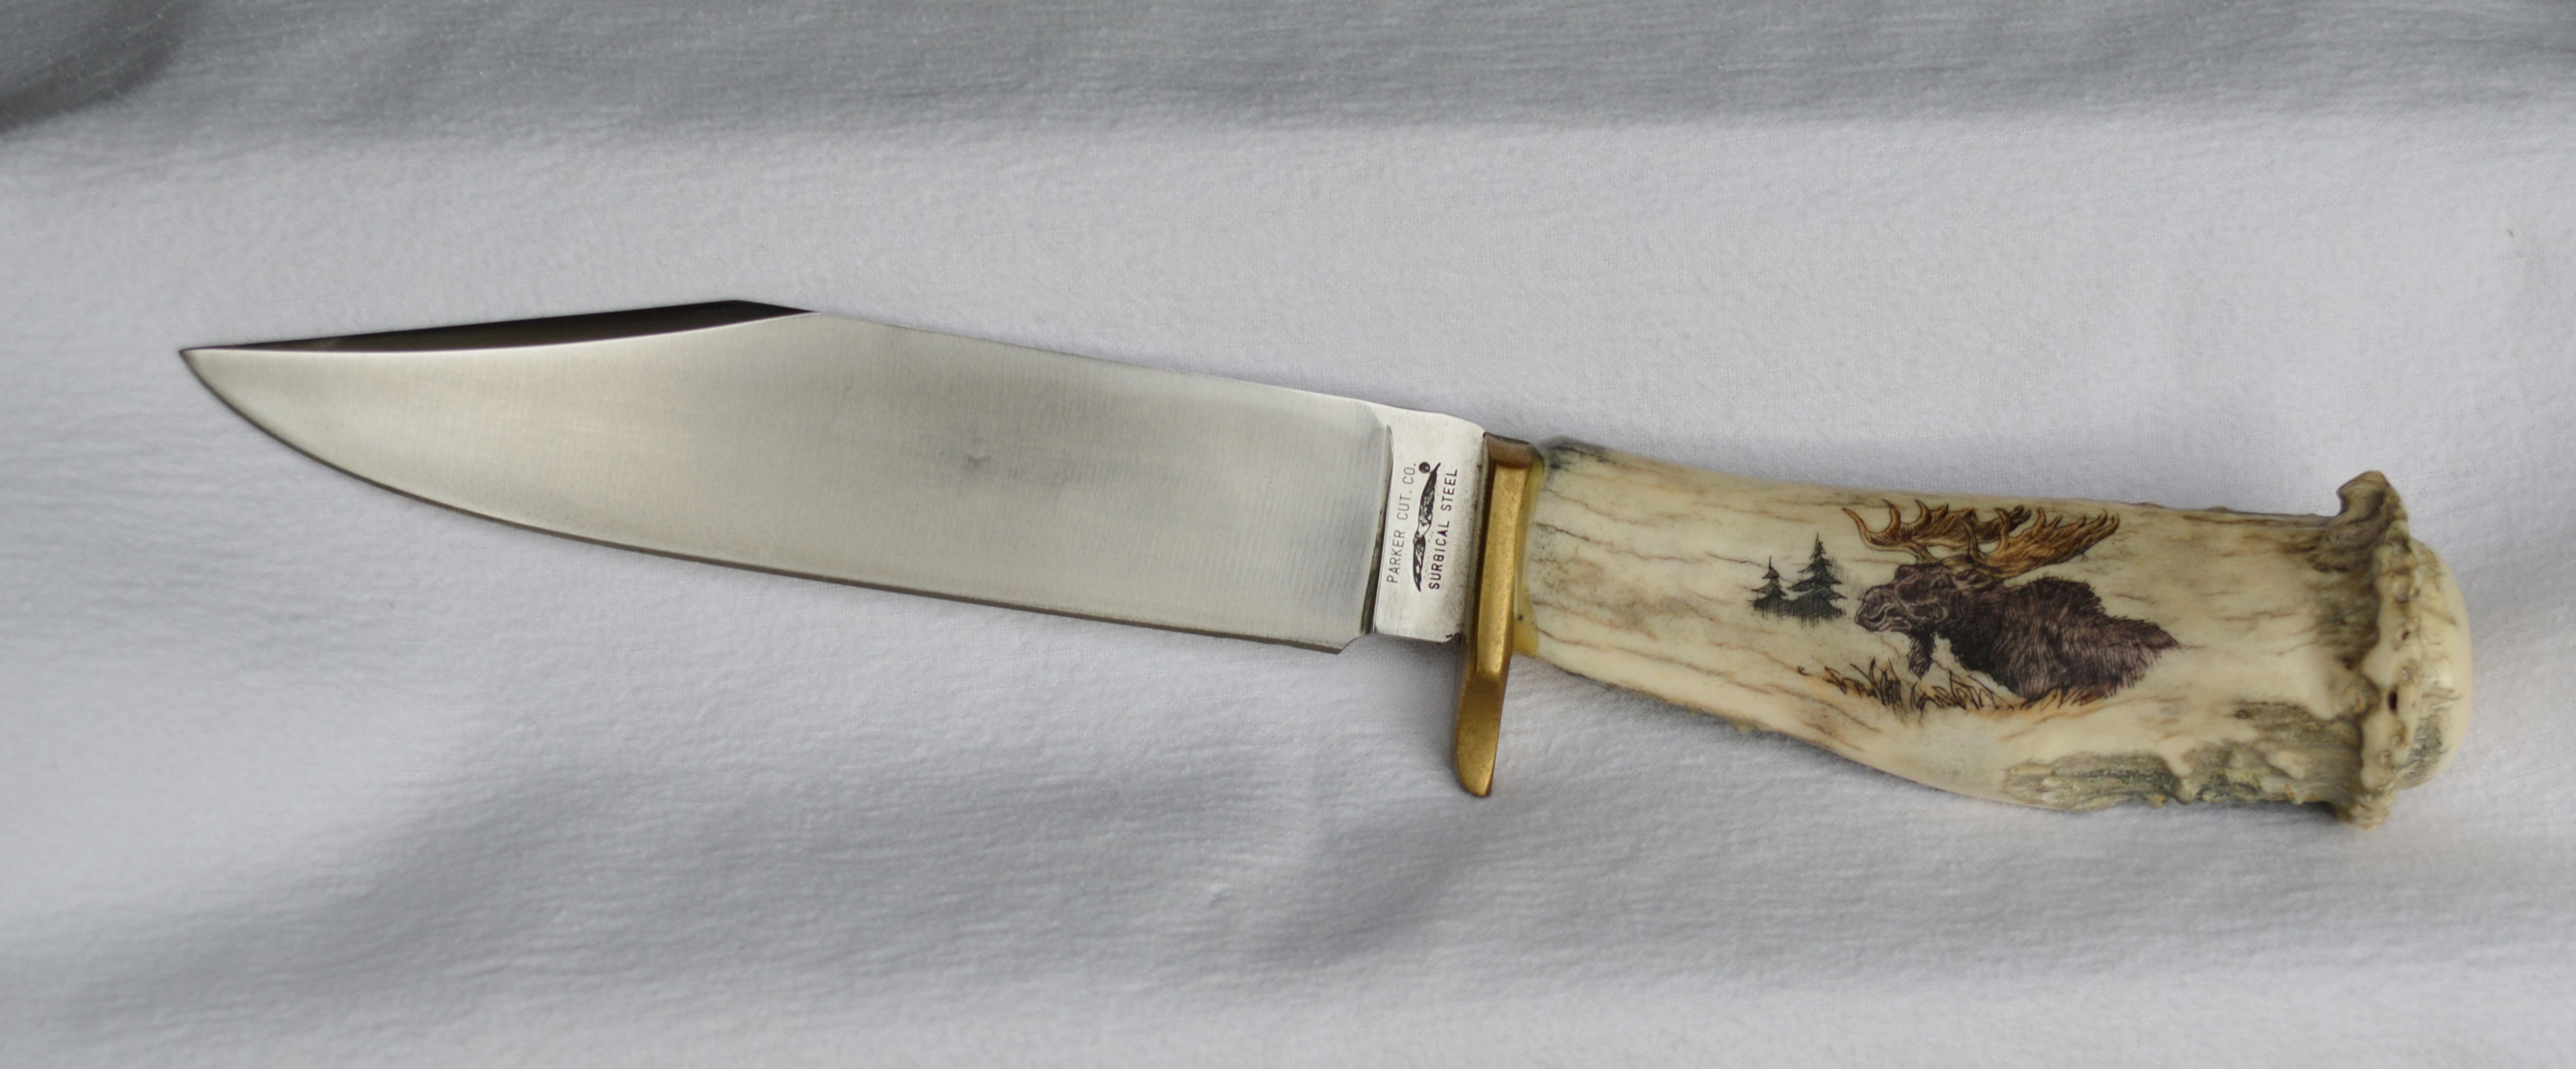 Pin On Collector Knives